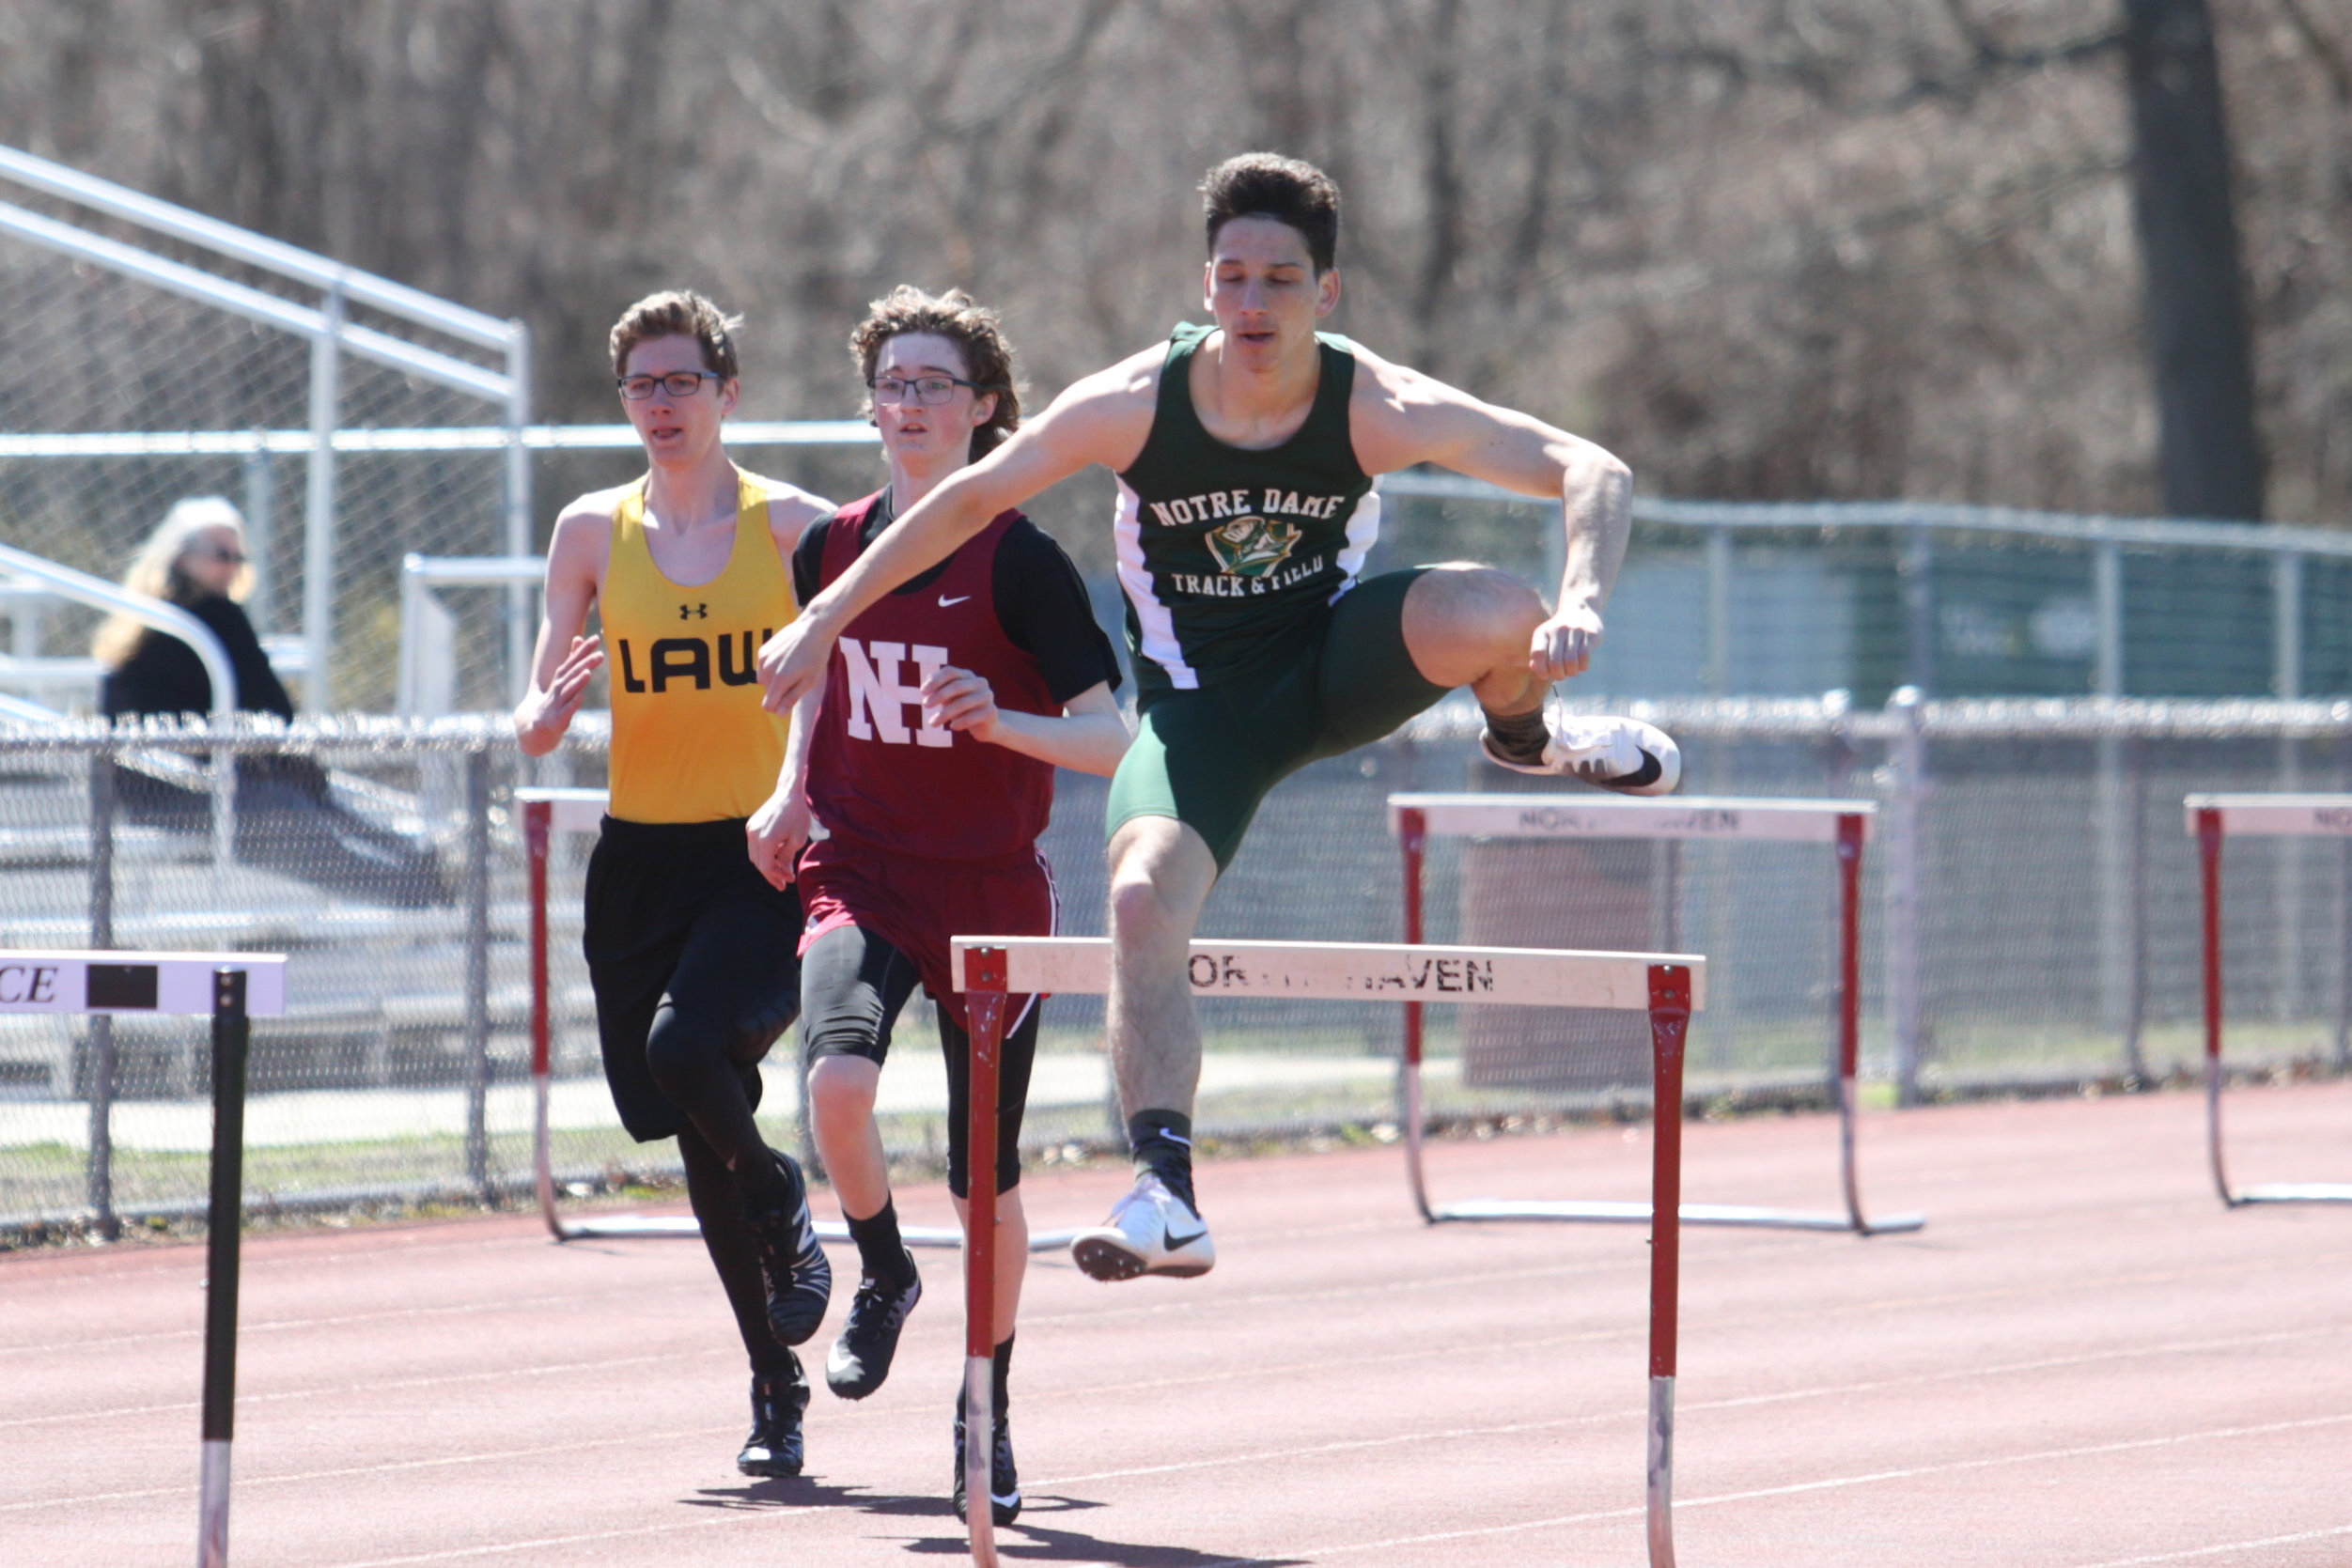 ND: Track improves to 4-1